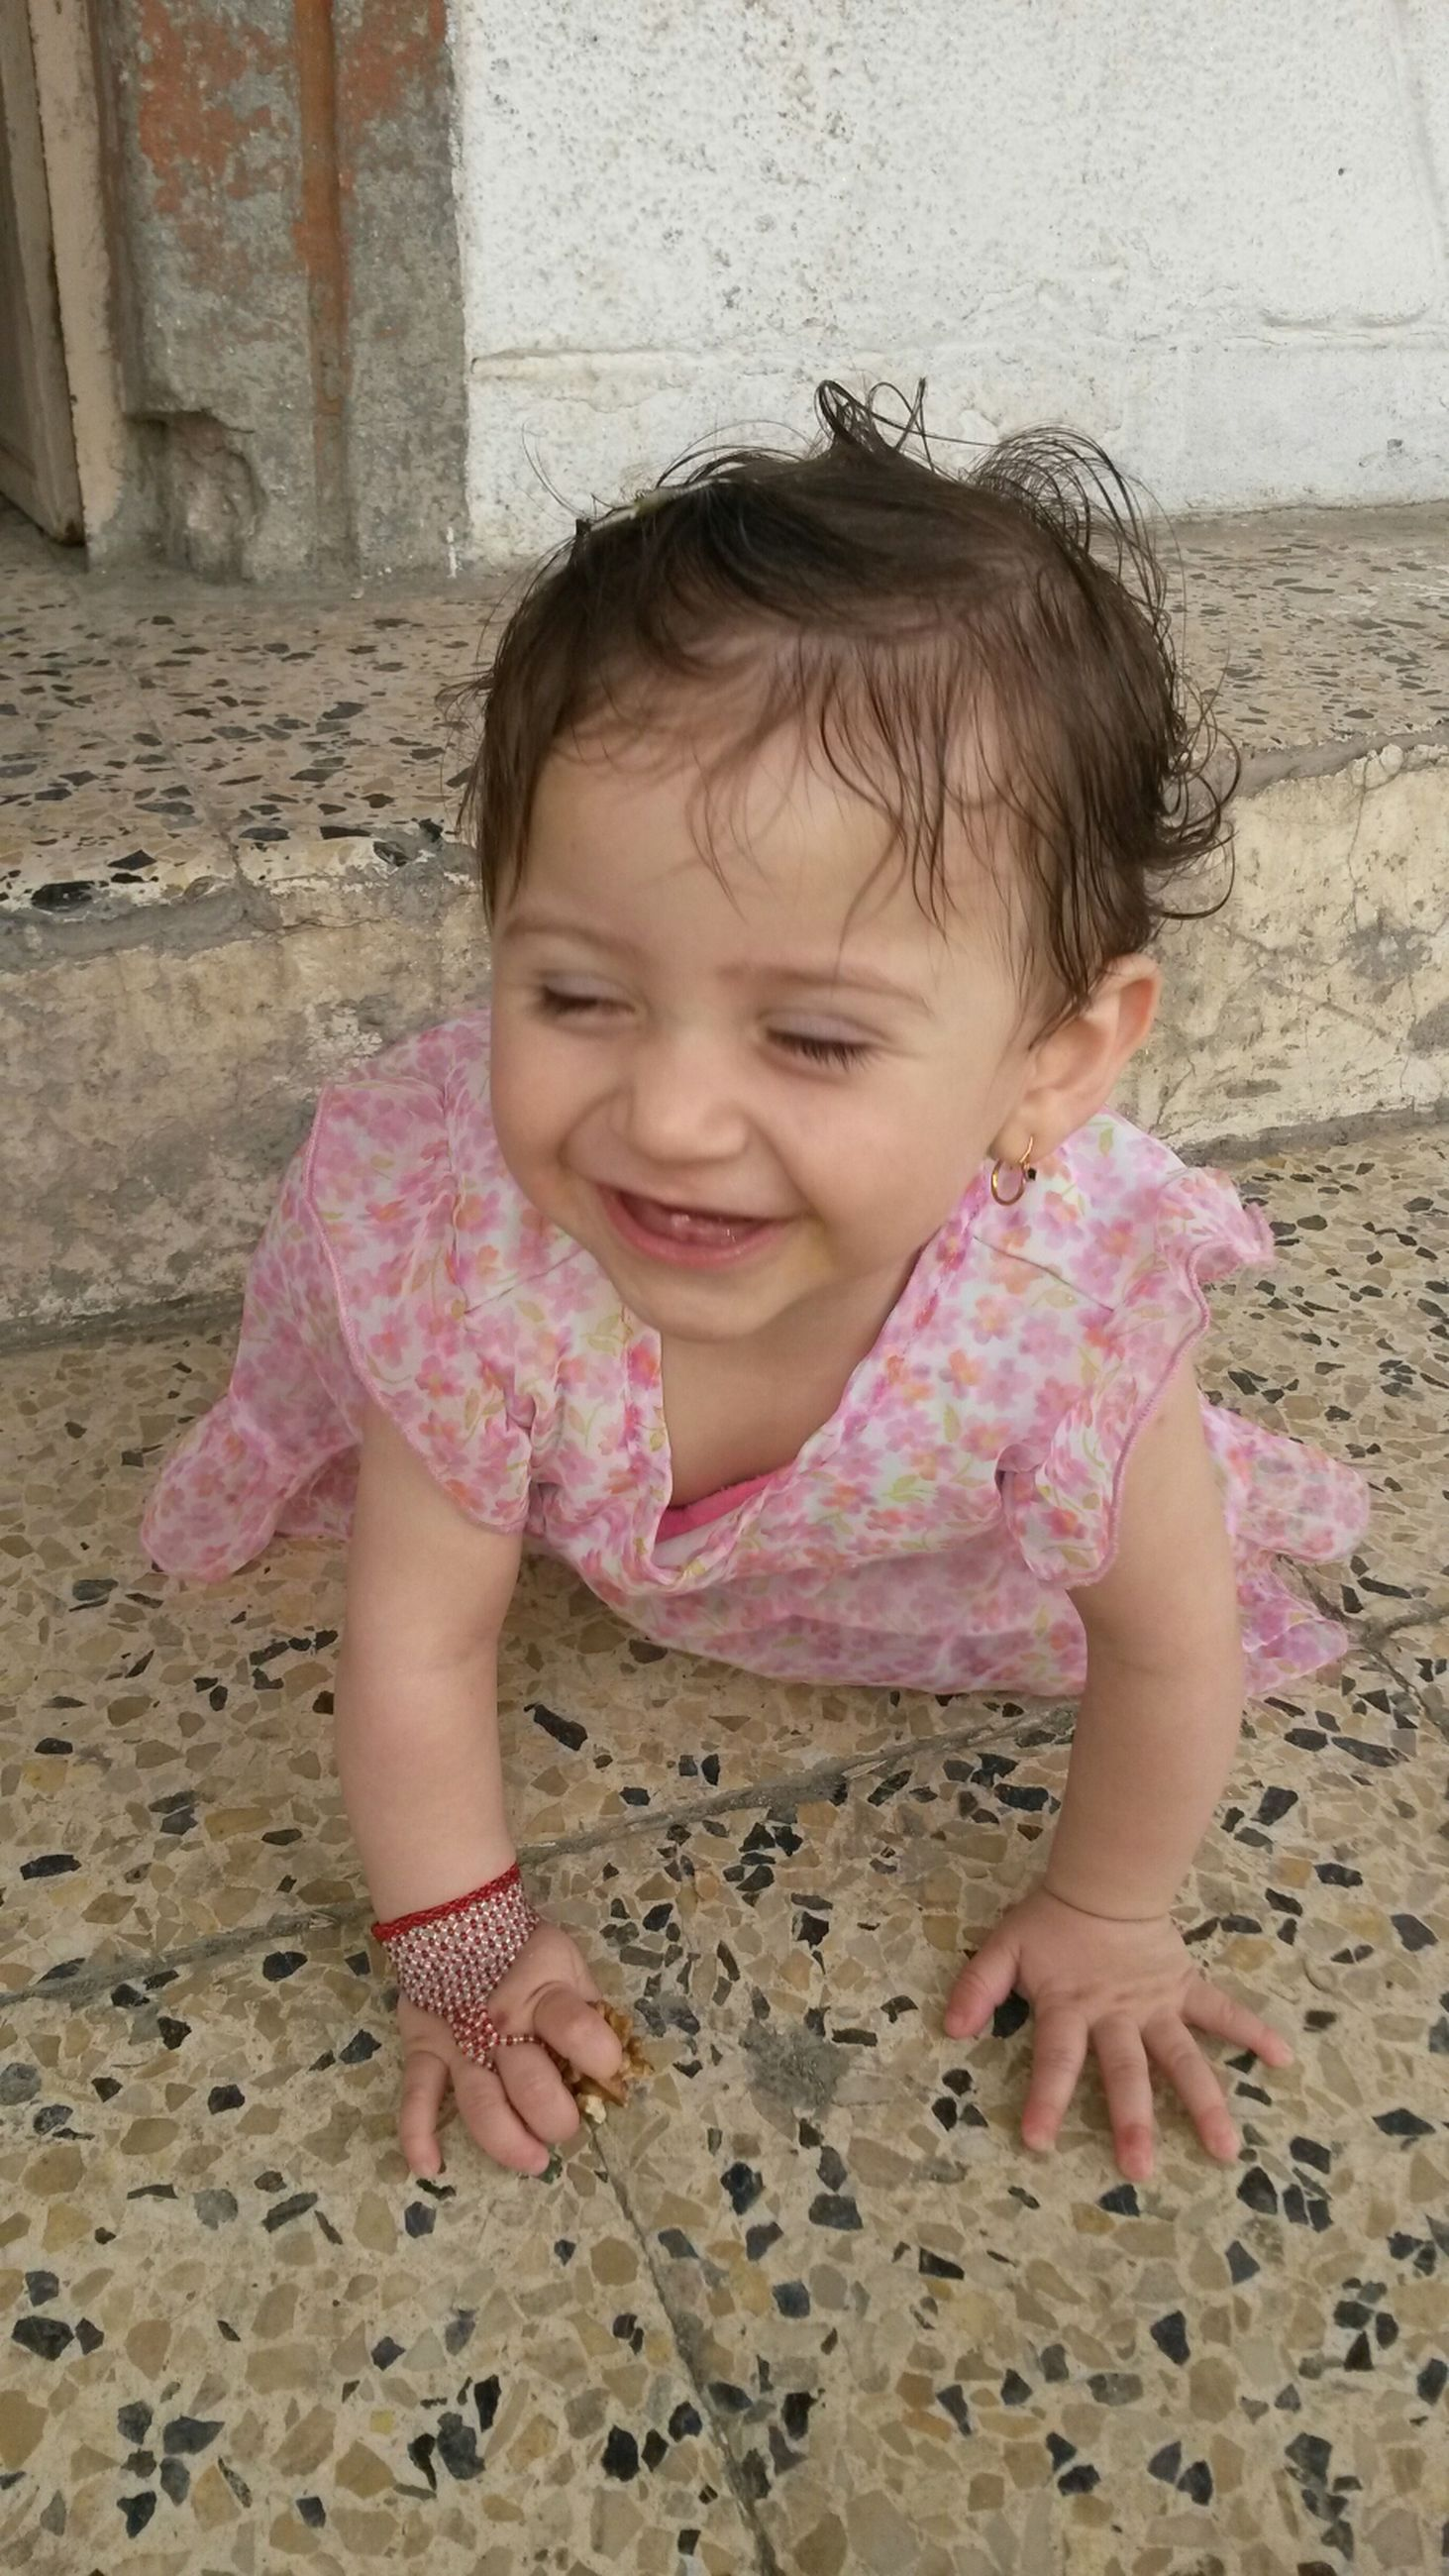 childhood, elementary age, person, innocence, cute, girls, lifestyles, casual clothing, leisure activity, portrait, looking at camera, full length, boys, front view, smiling, happiness, pink color, toddler